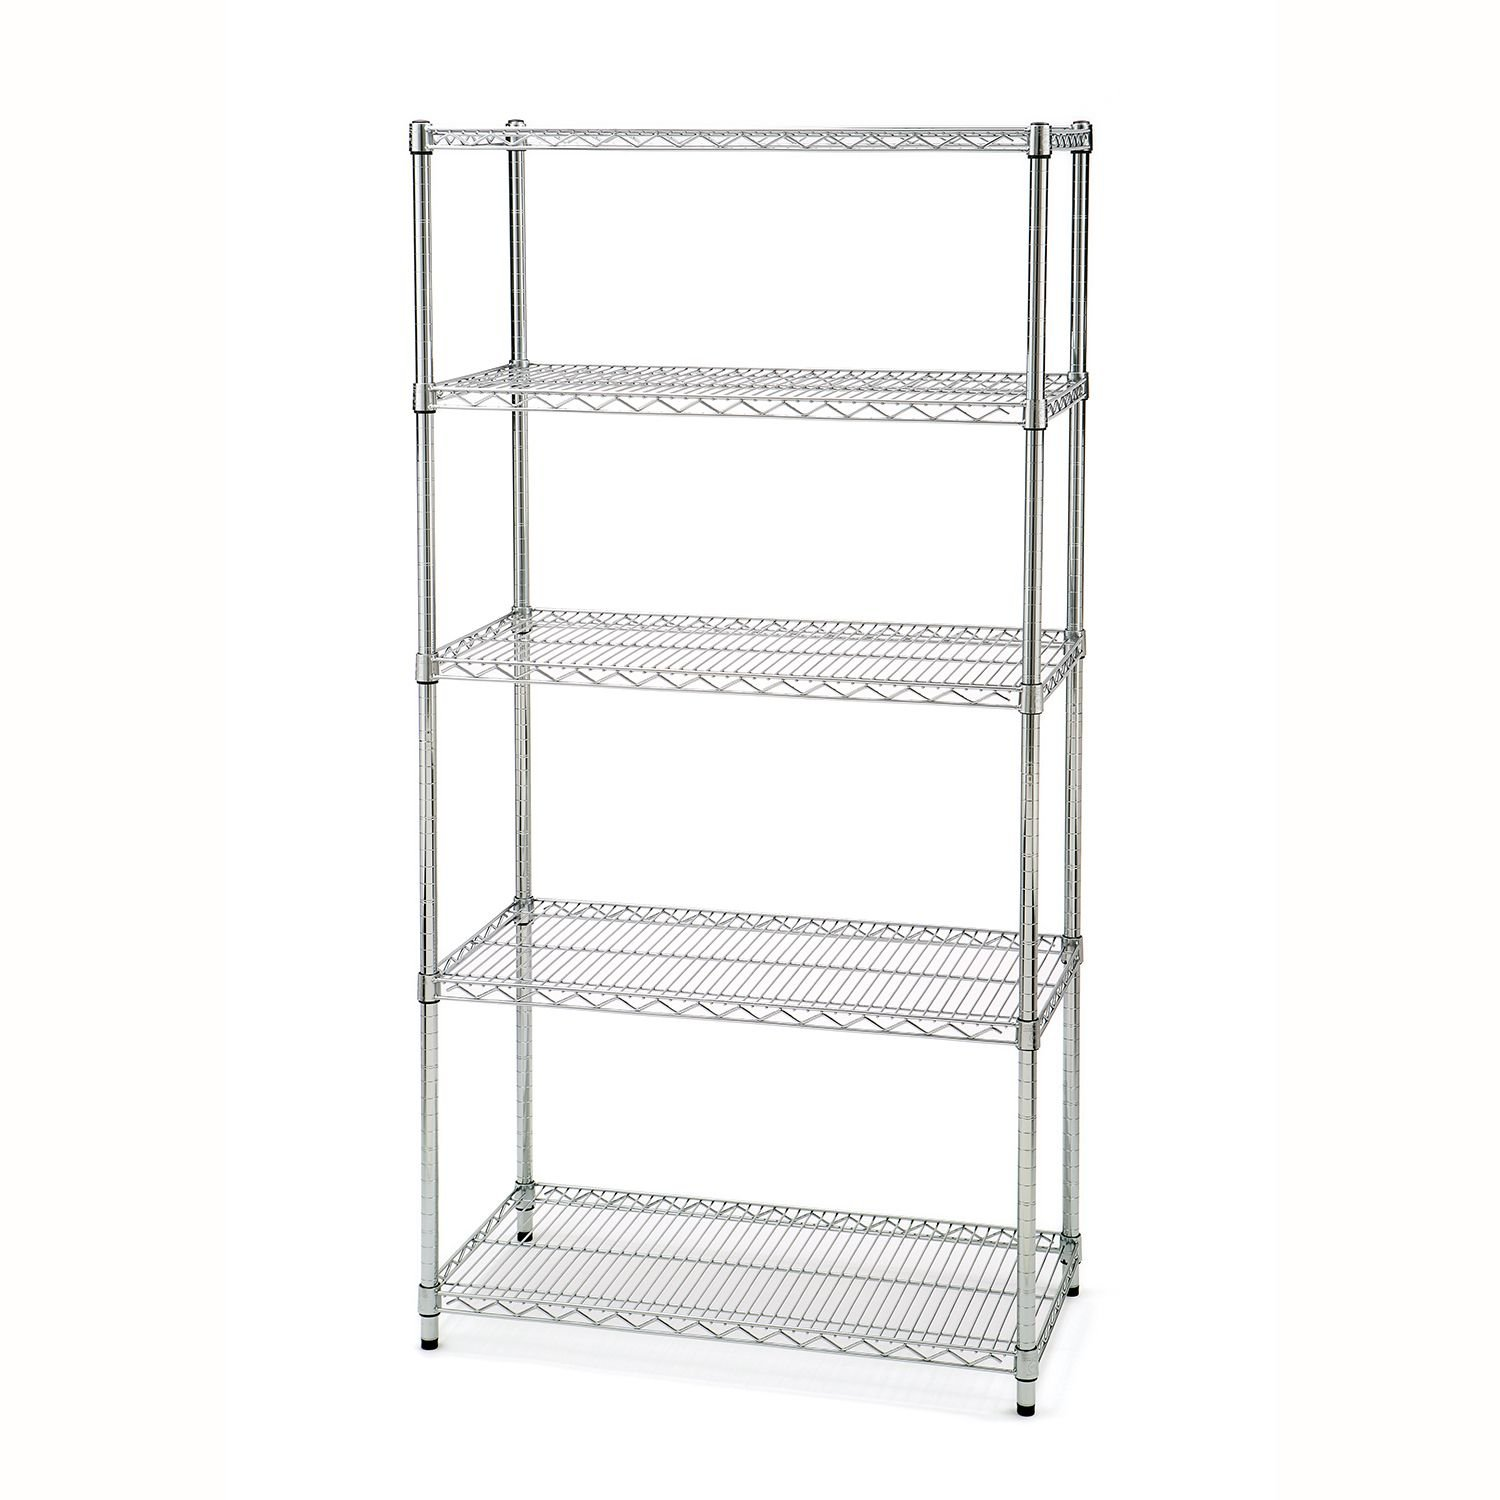 Seville Classics 5-Tier Commercial Shelving with Wheels by Seville Classics (Image #2)